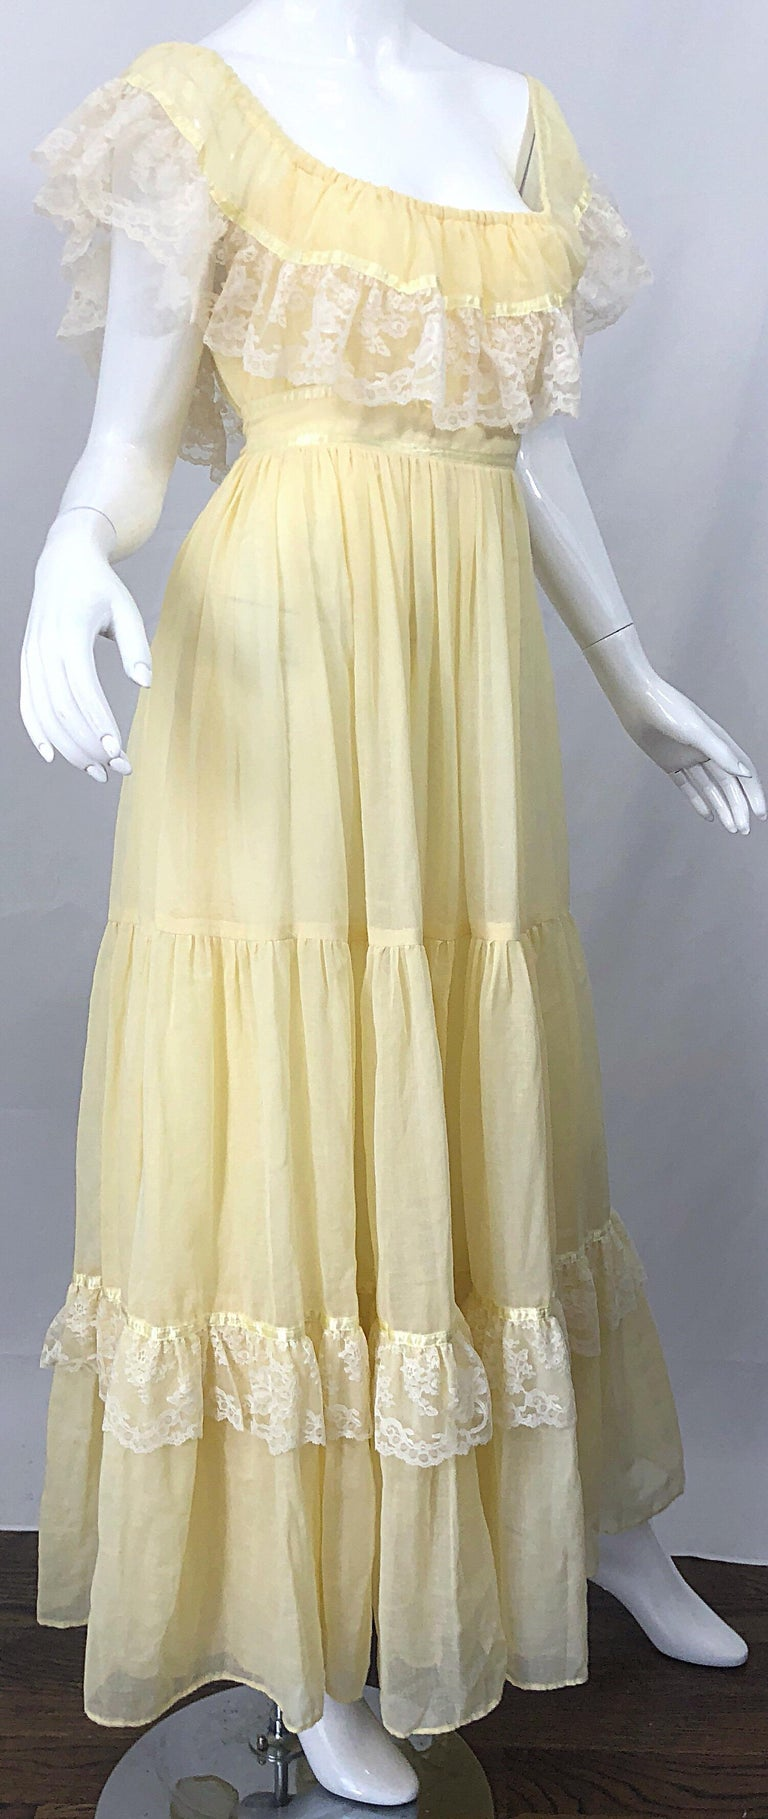 1970s Pale Light Yellow Cotton Voile Lace Vintage Boho